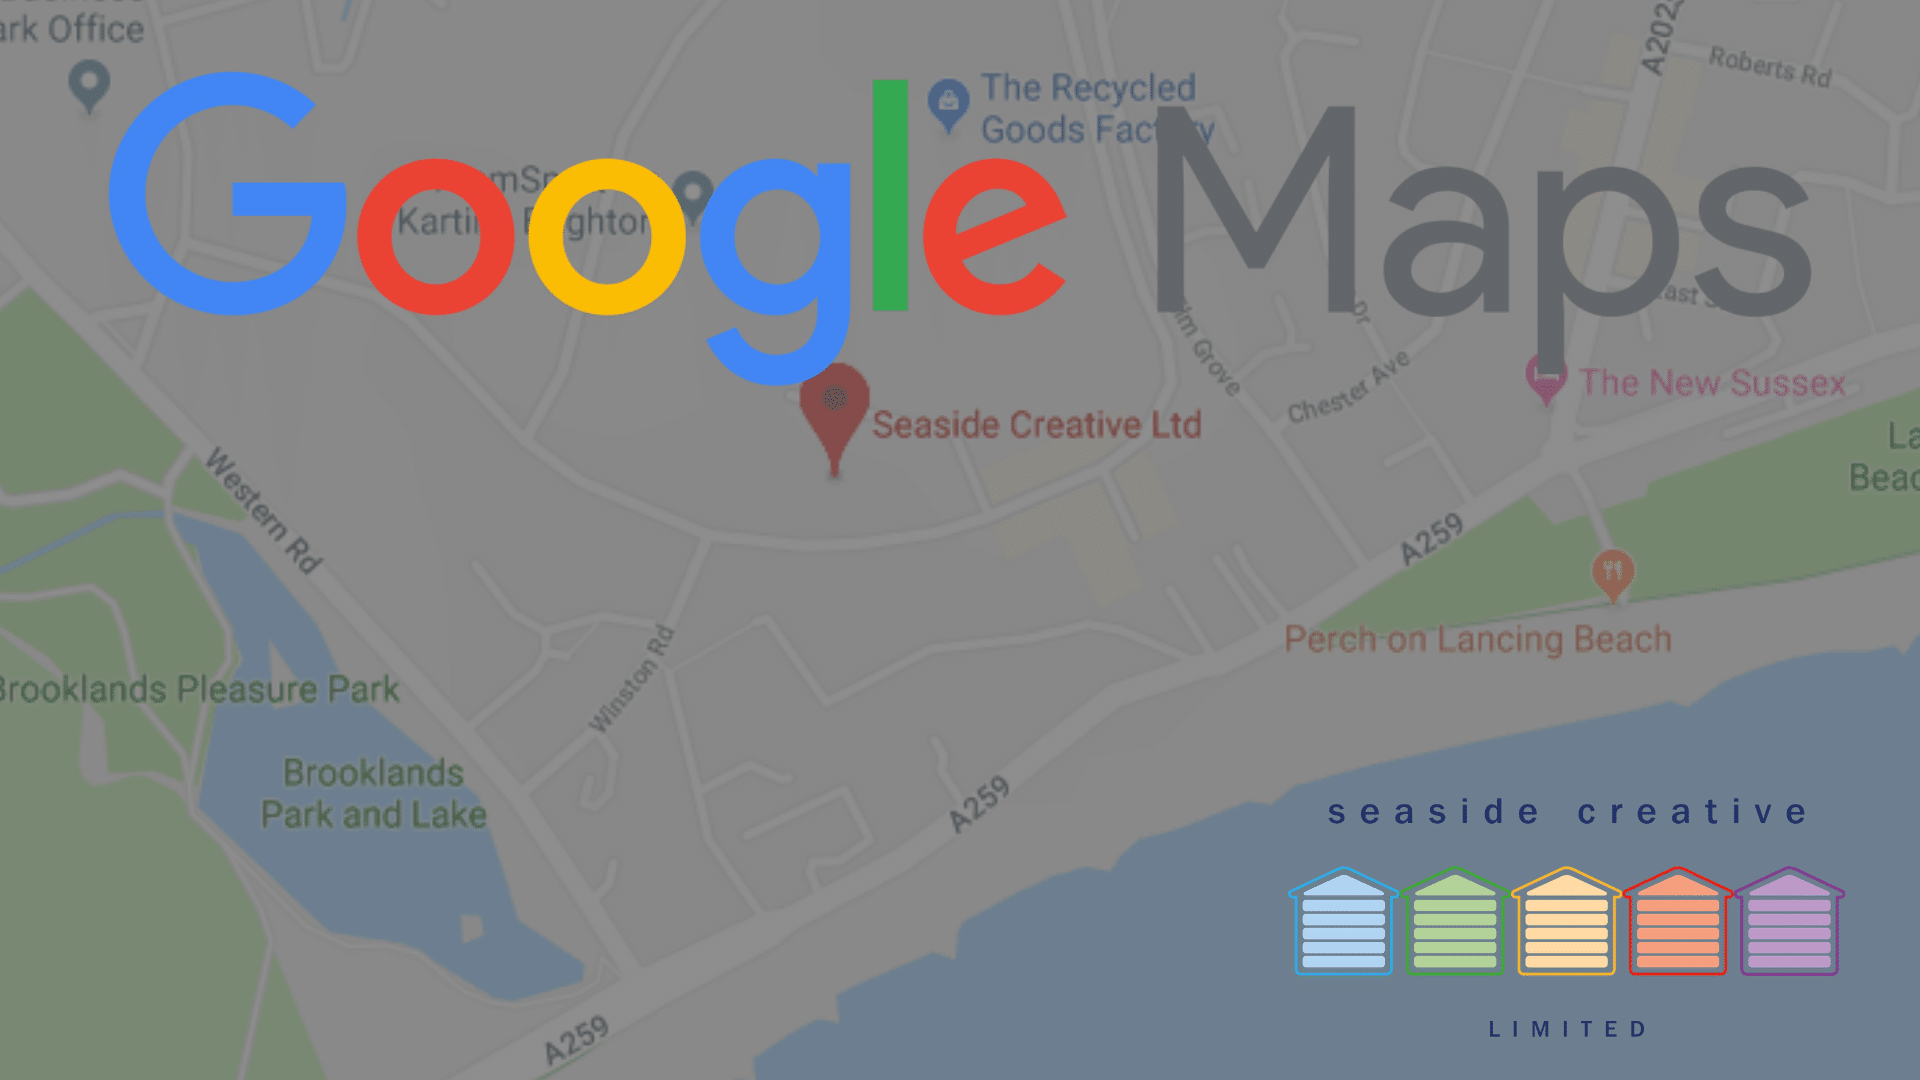 Seaside Creative Marketing Agency in Lancing, West Sussex